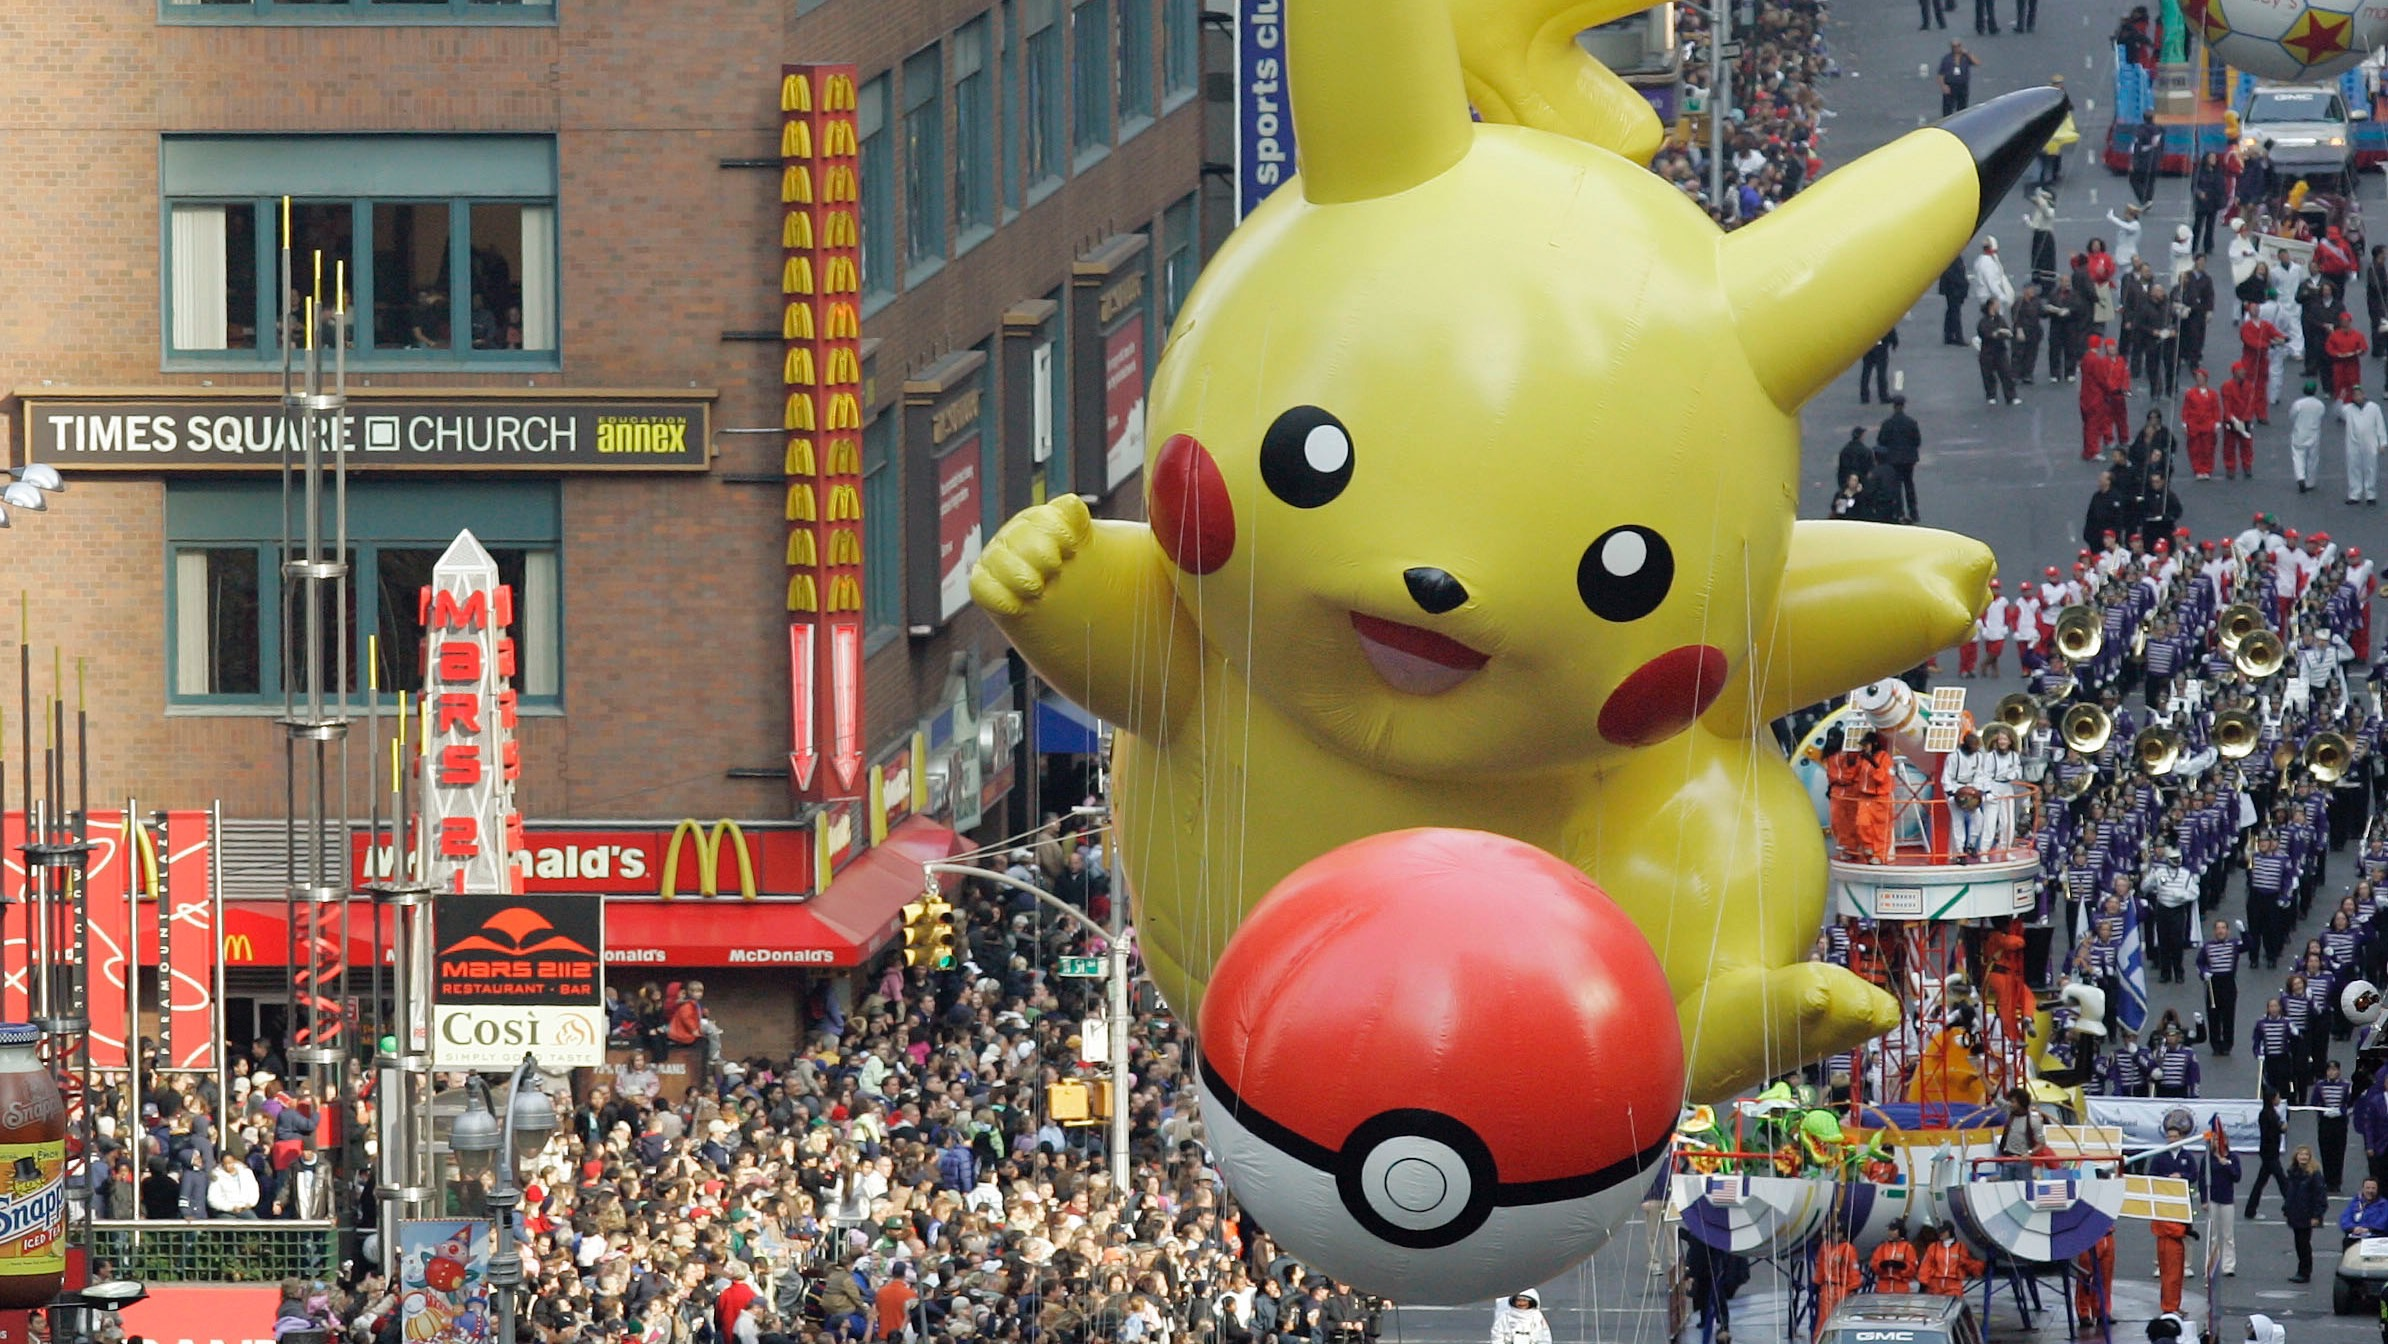 Lazy people have already come up with Pokemon Go hacks that